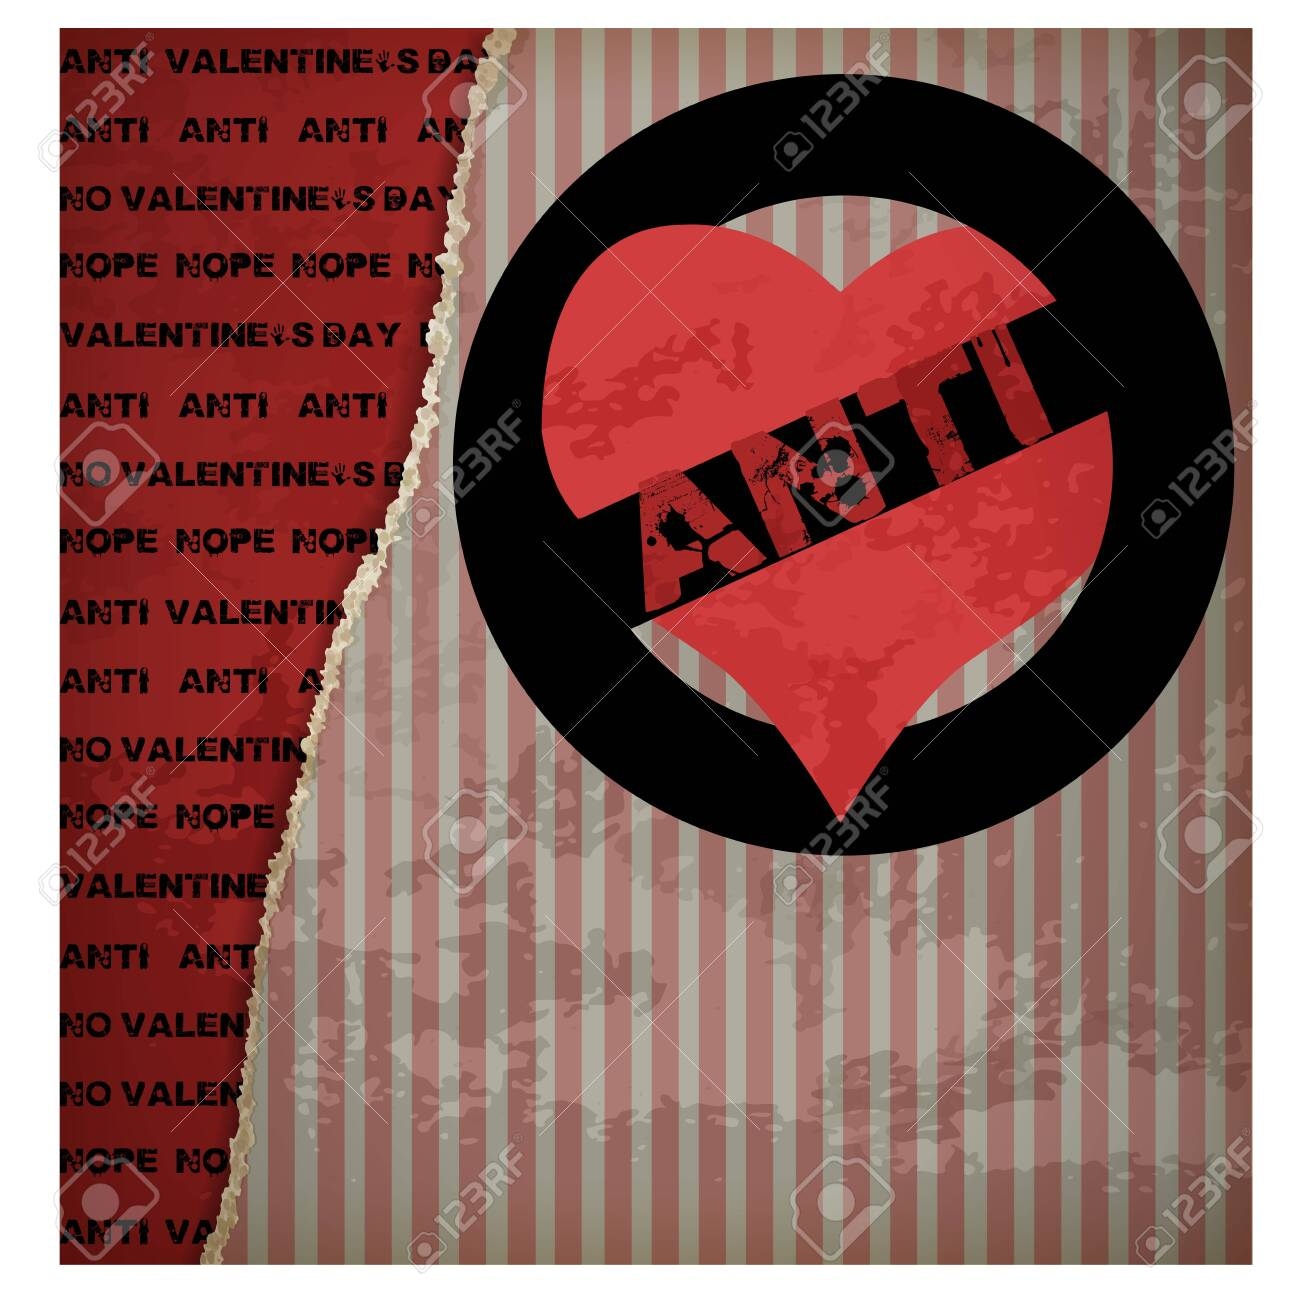 Anti Valentine S Day Background Vector Illustration Royalty Free Cliparts Vectors And Stock Illustration Image 137682179